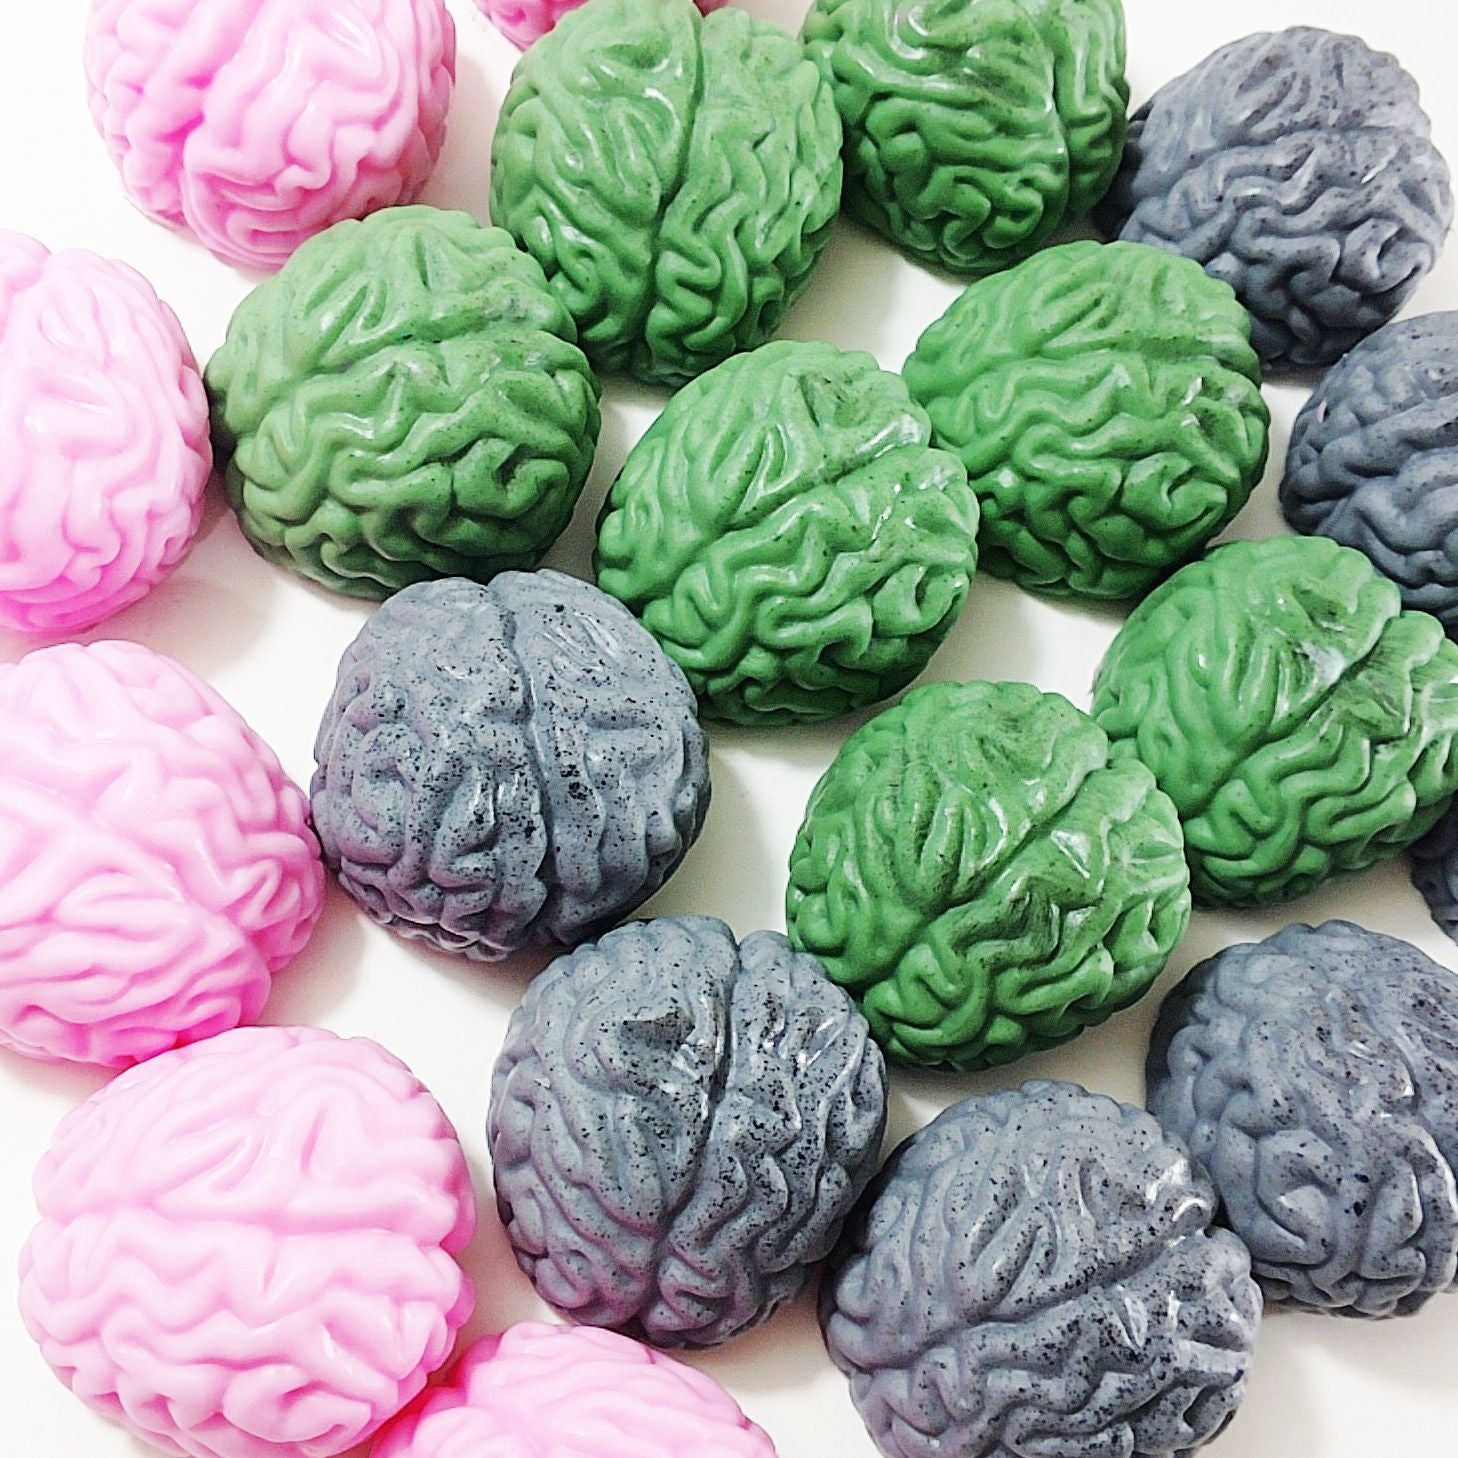 Zombie Brain soap gift set for Halloween gifts. Handmade by Sunbasilsoap.com